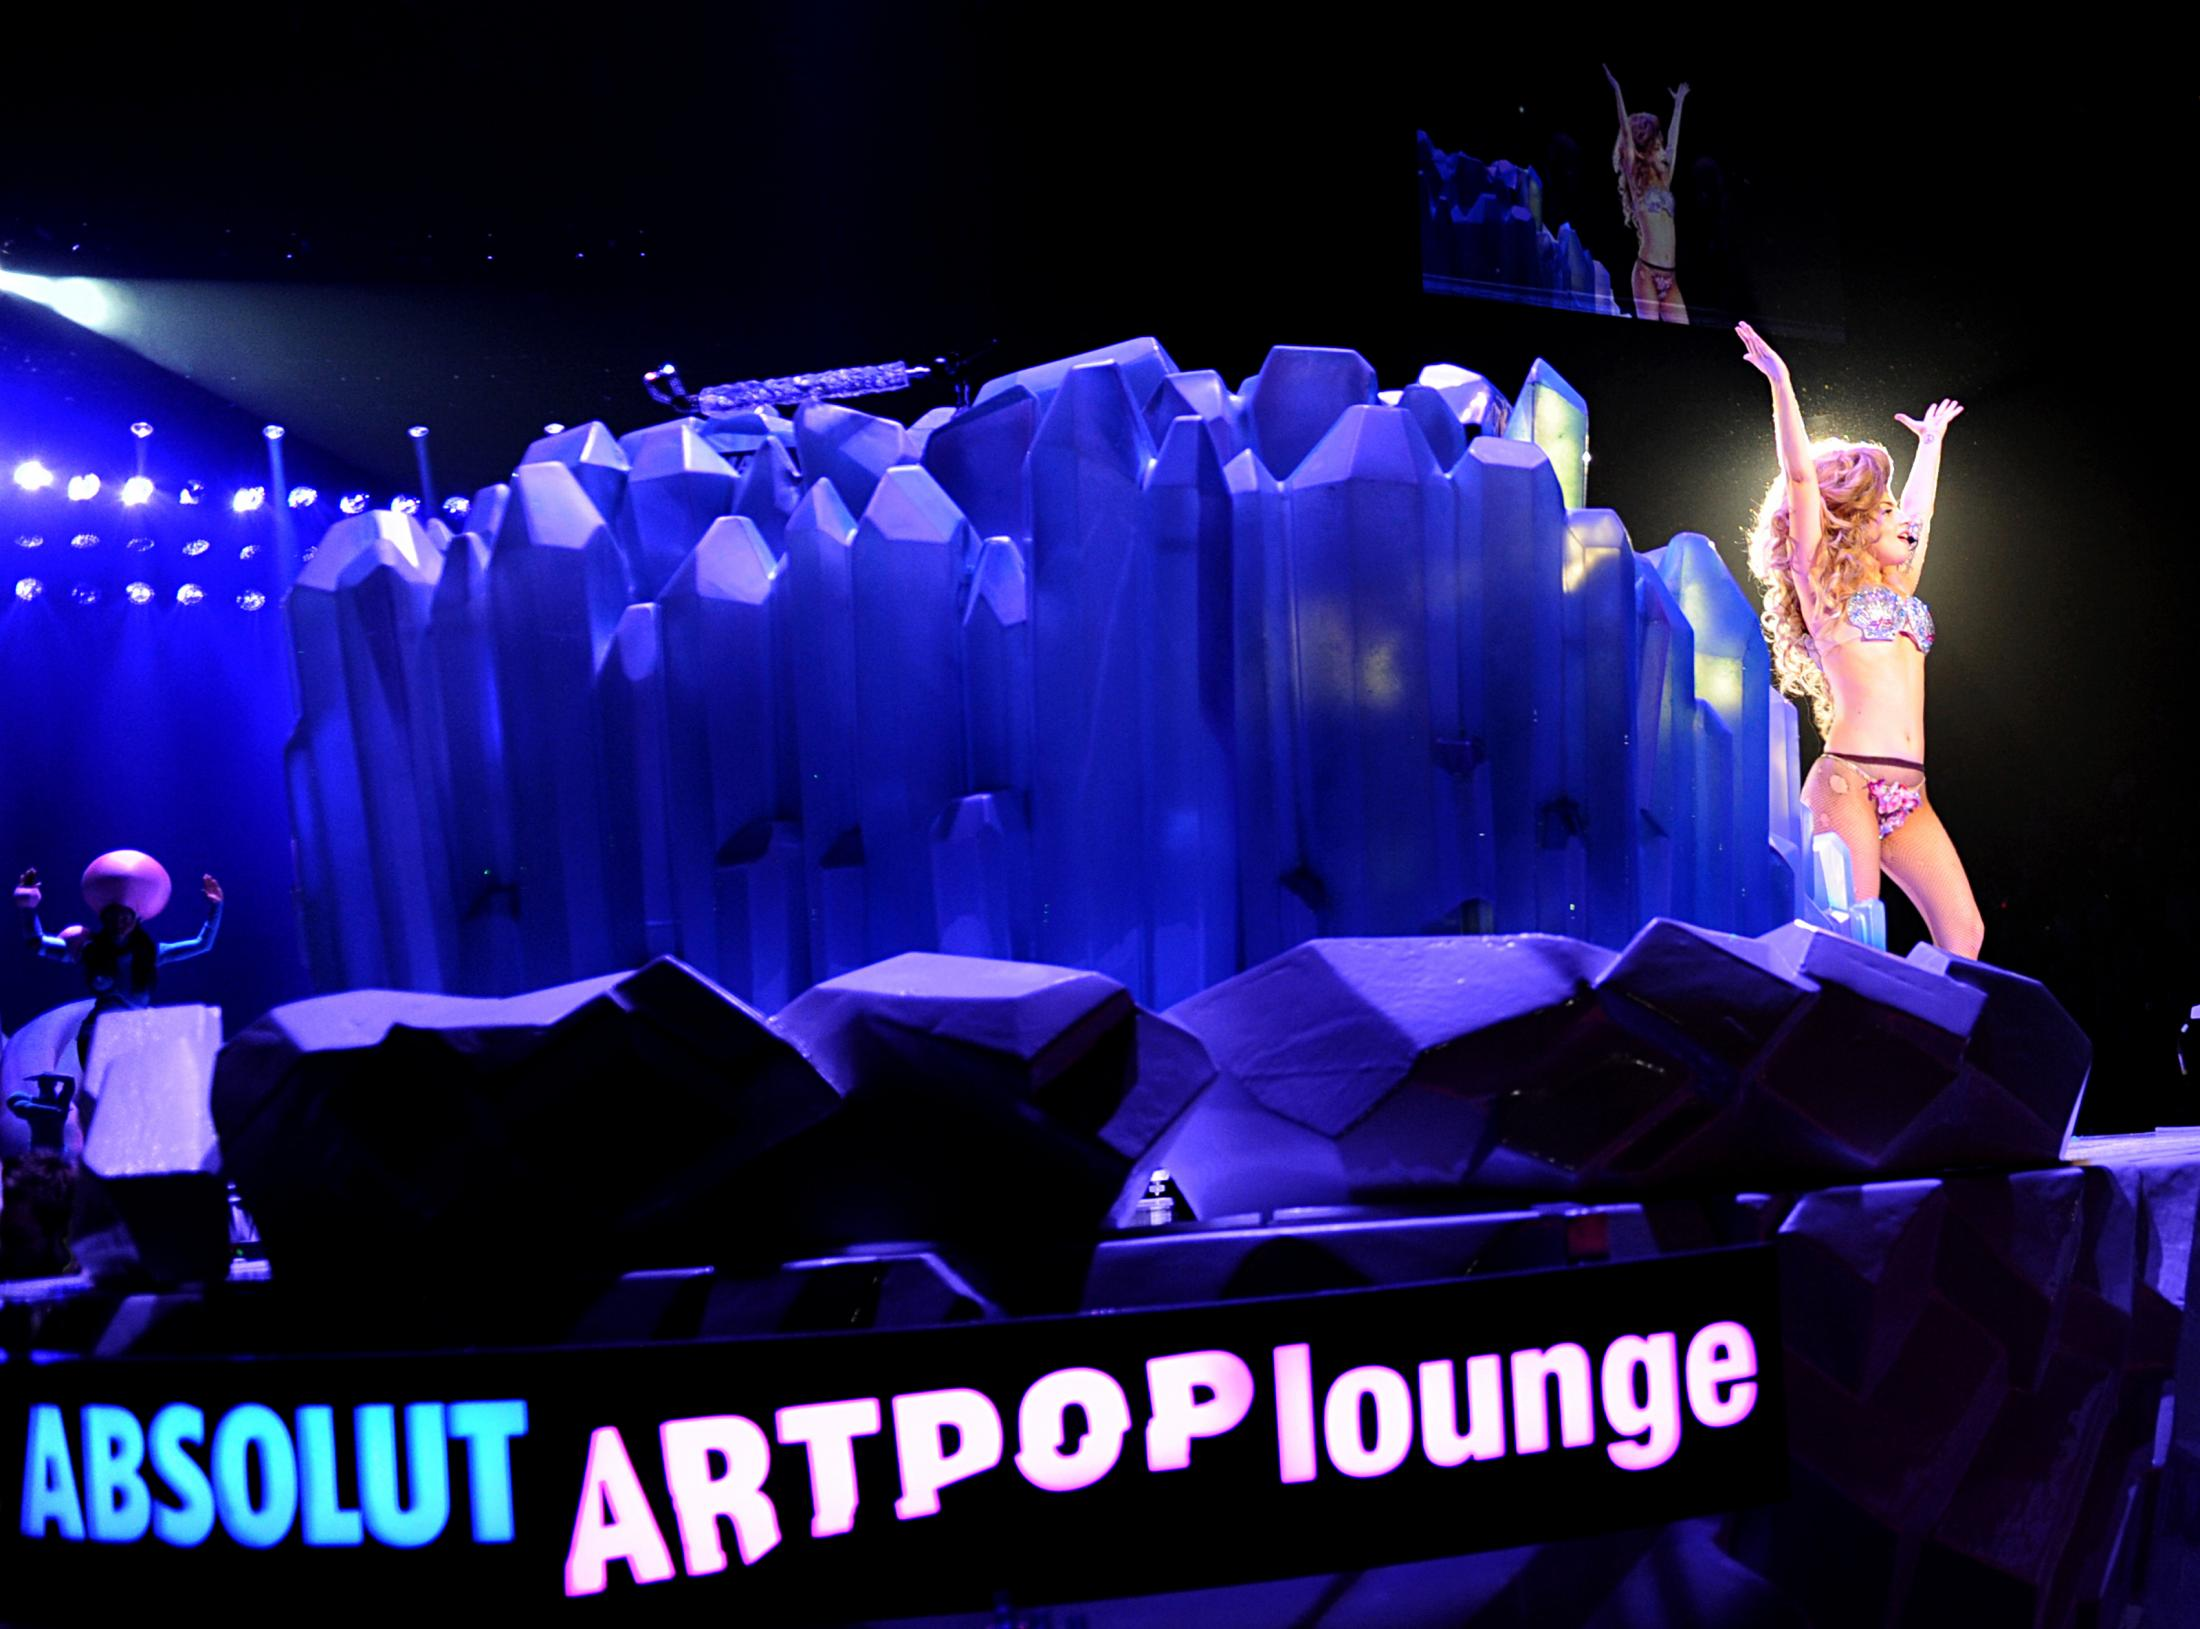 Thumbnail for Absolut ARTPop Lounge